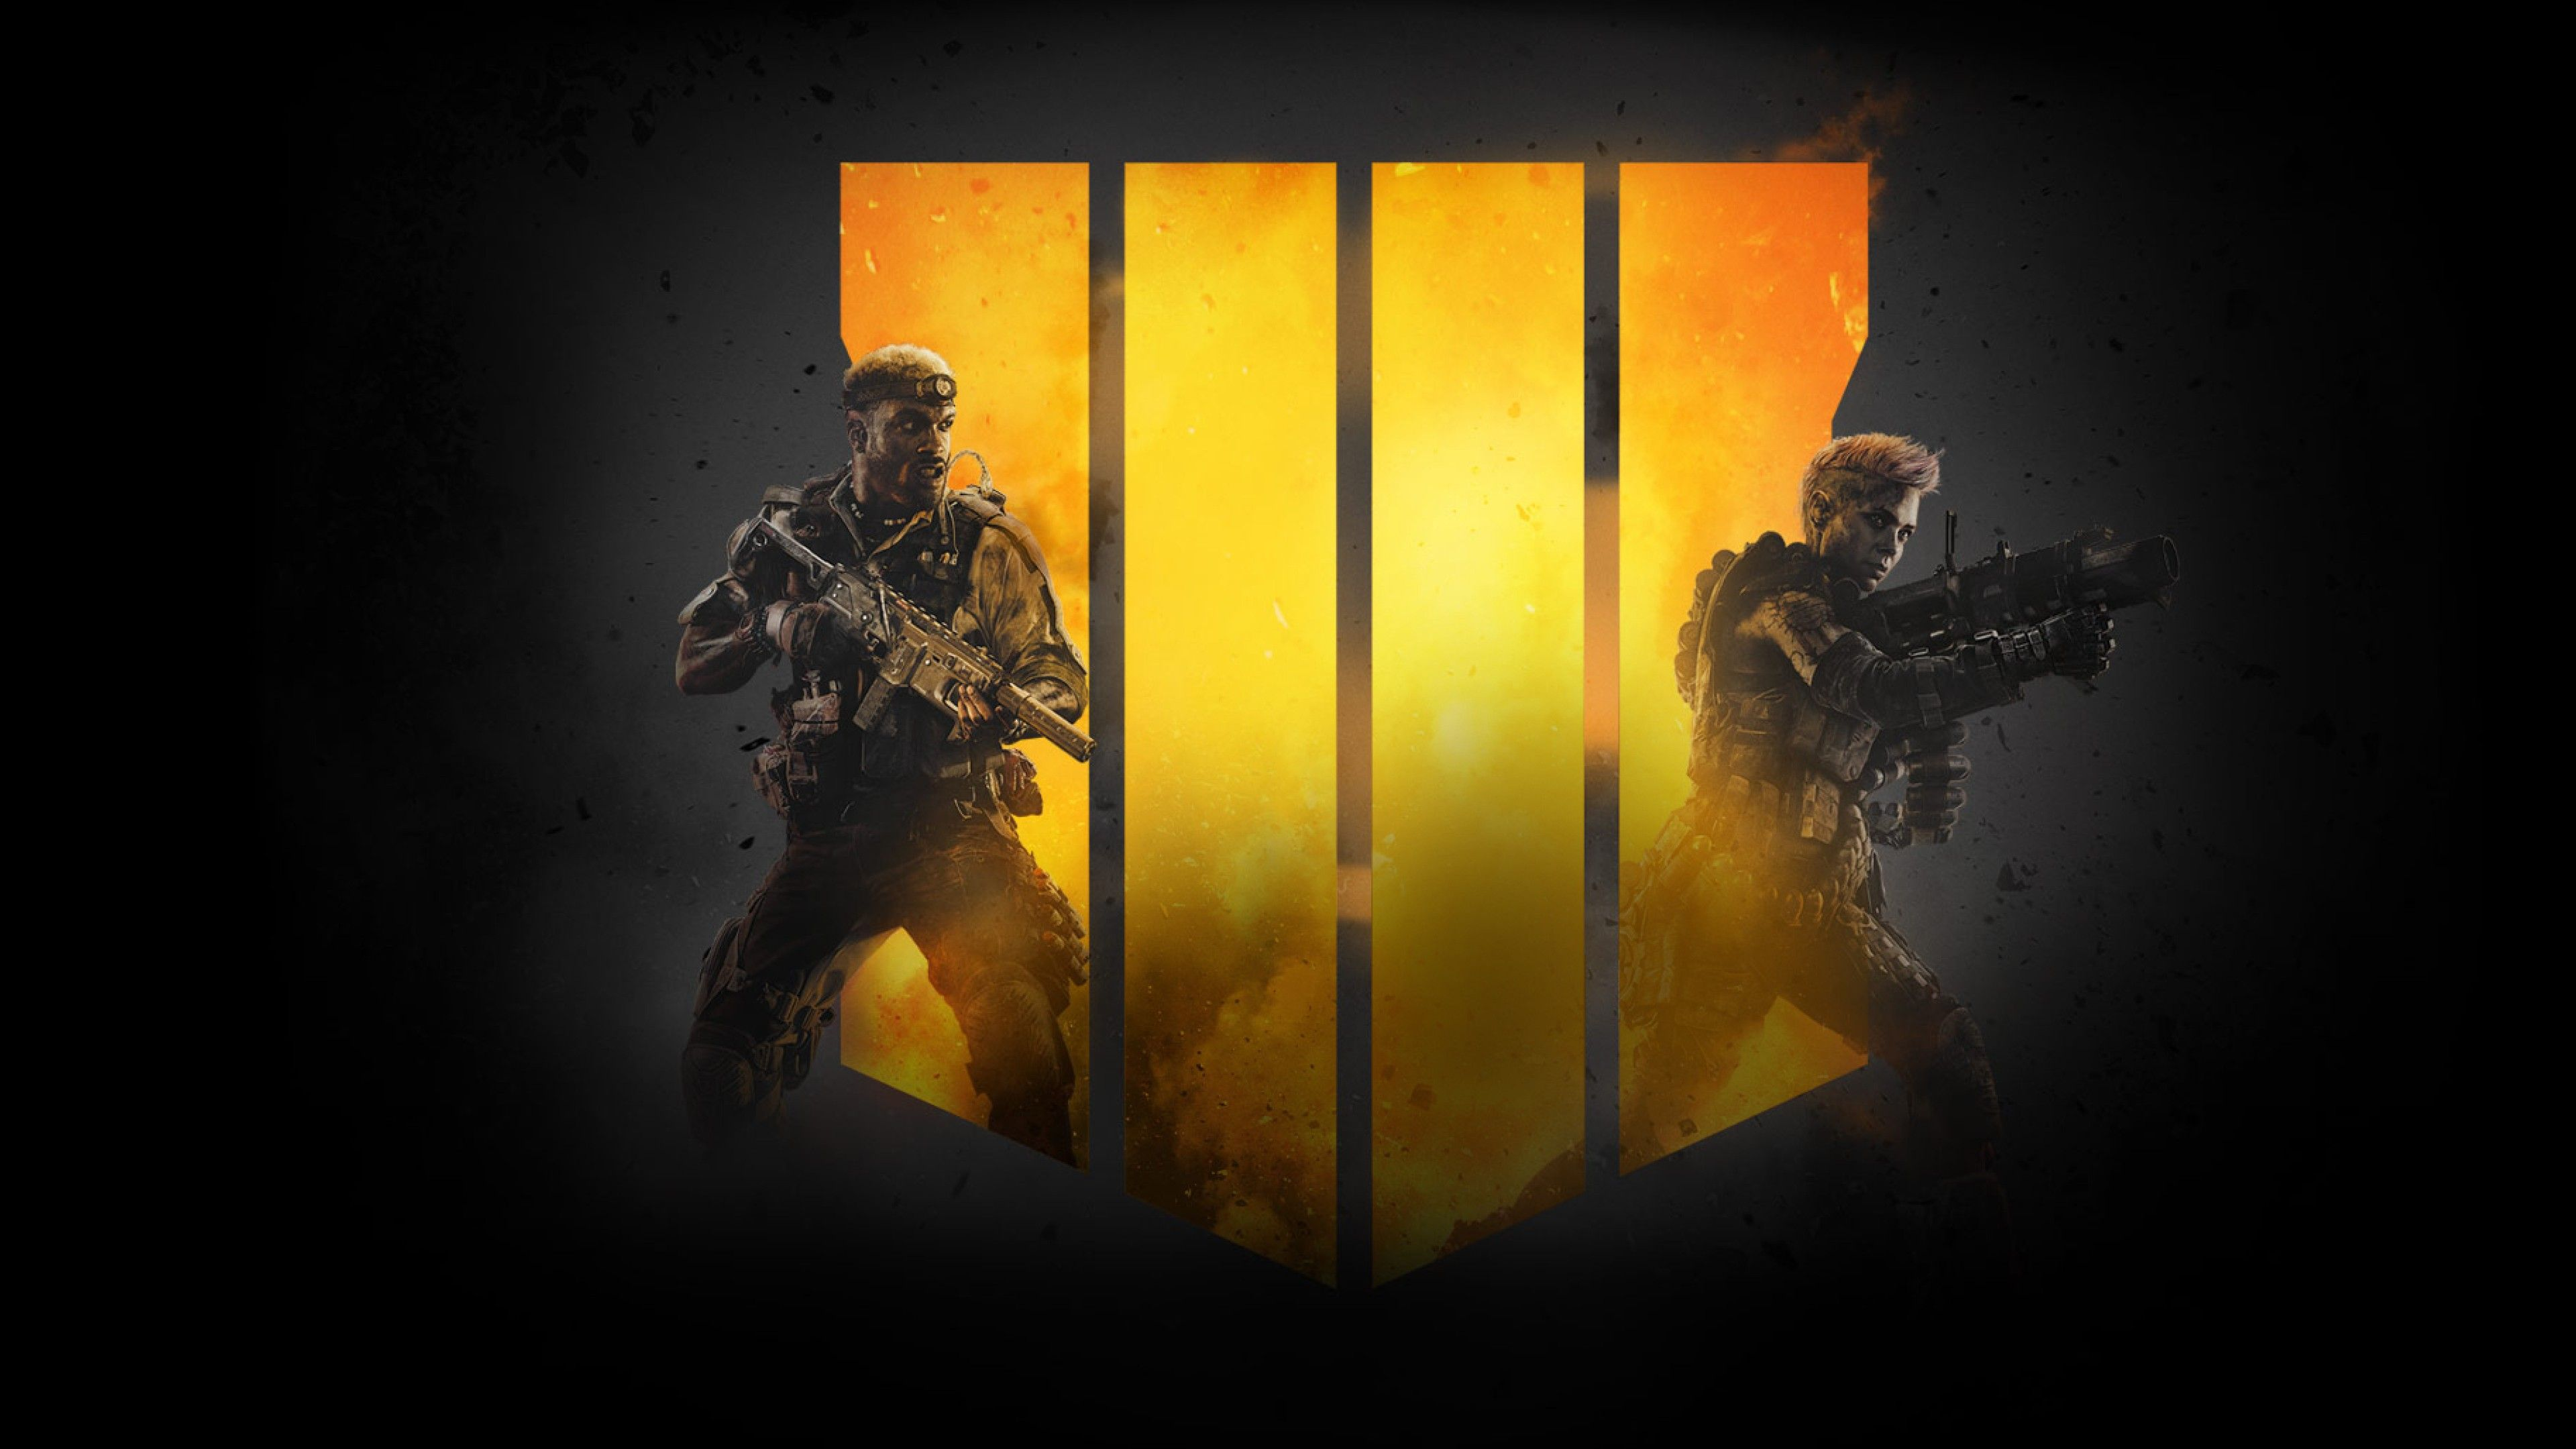 Call Of Duty Black Ops 4 Wallpapers Top Free Call Of Duty Black Ops 4 Backgrounds Wallpaperaccess